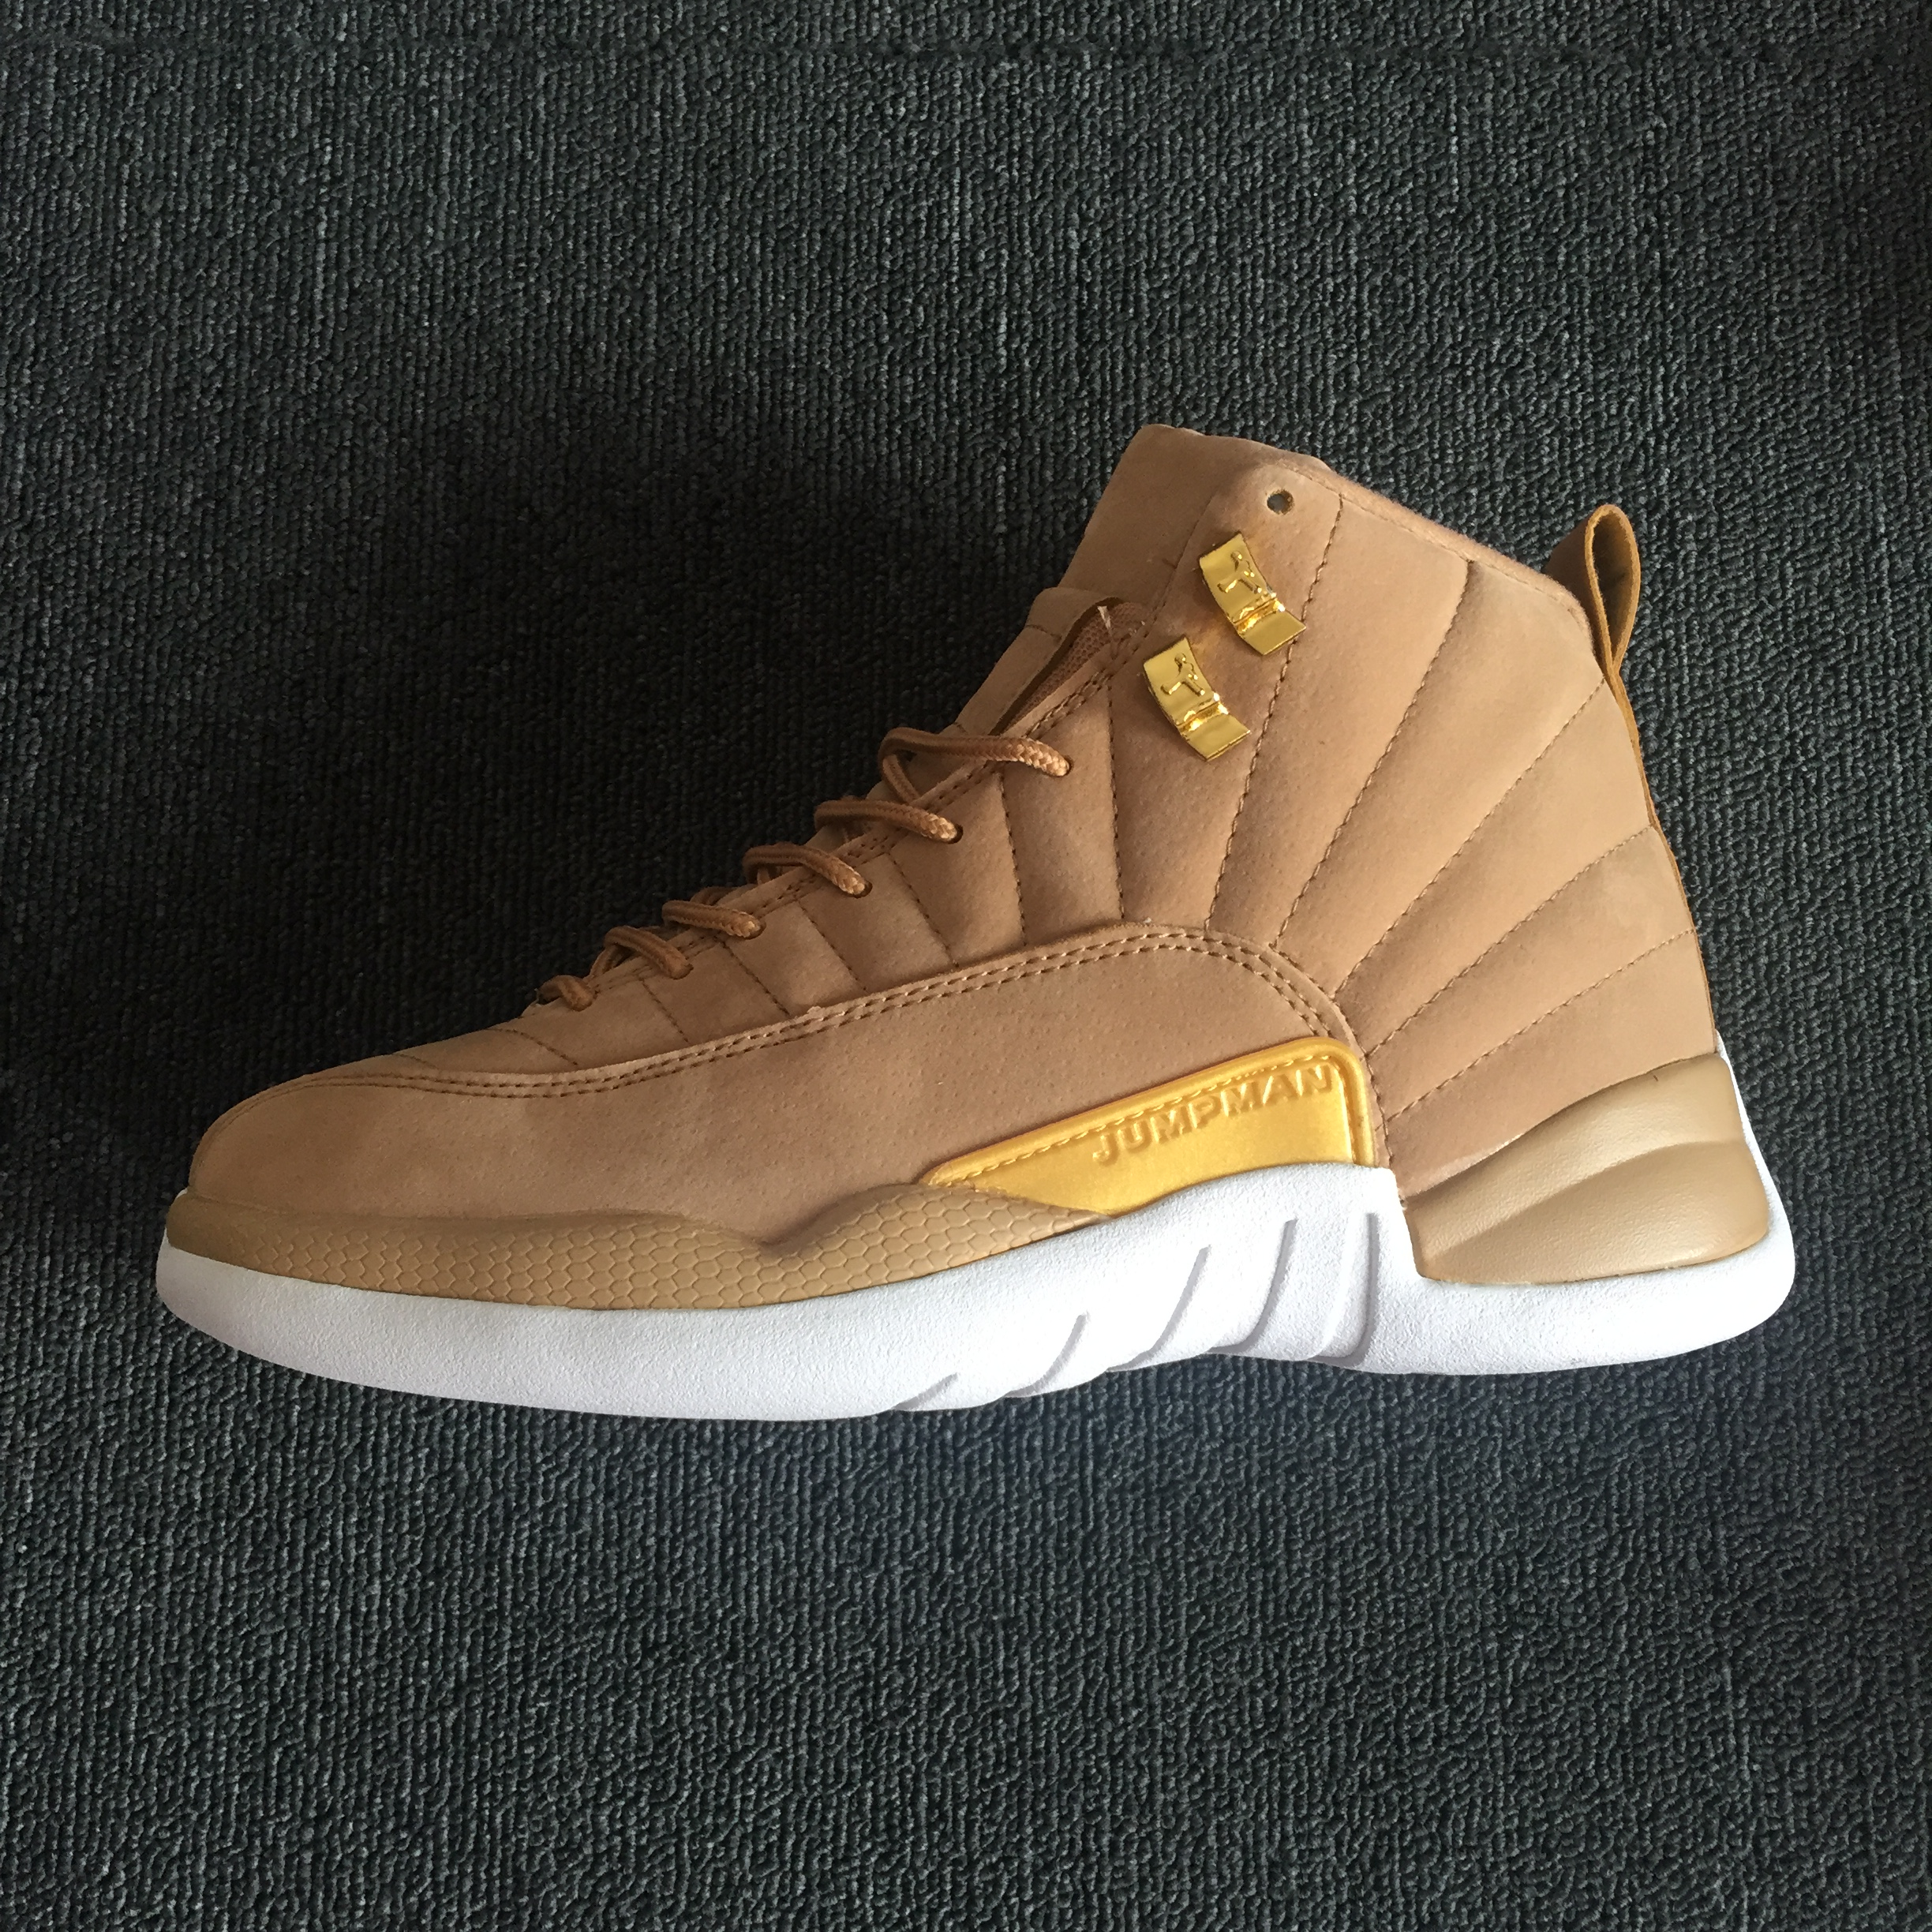 on sale 3a4dc 98c8a 2018 Men Jordan 12 Wheat Yellow Gold Shoes [18women5616 ...